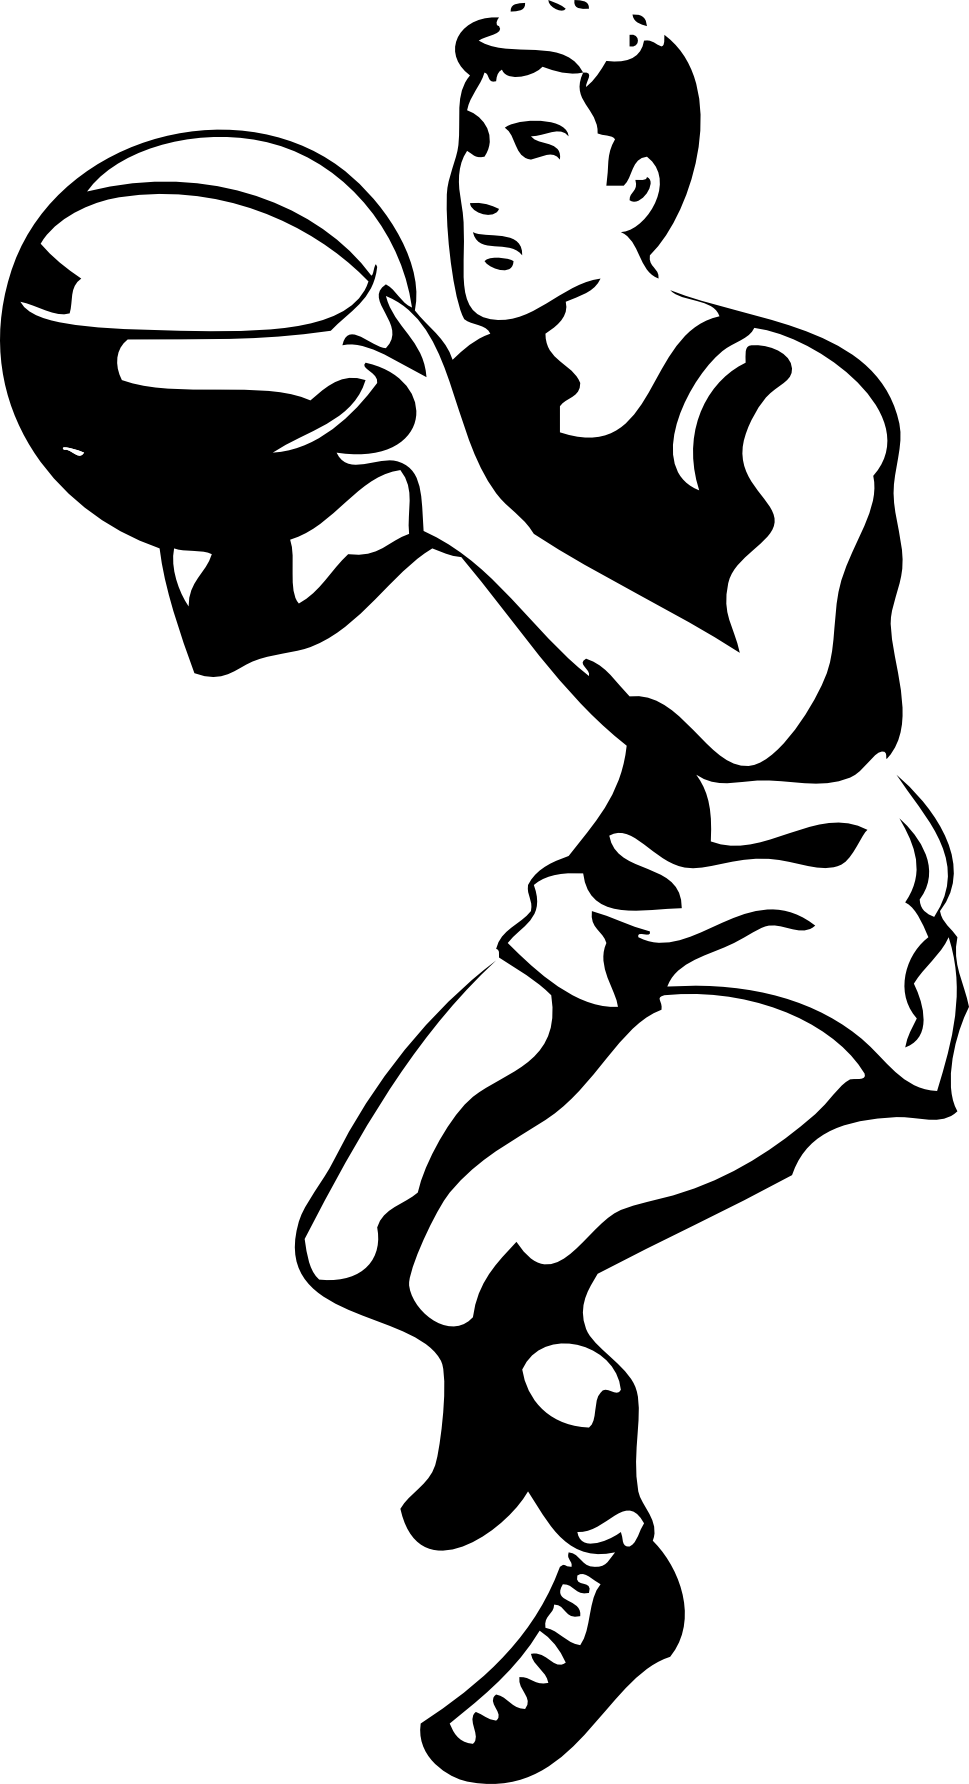 Basketball clipart black and white: Black and white images - Kick PNG Black And White